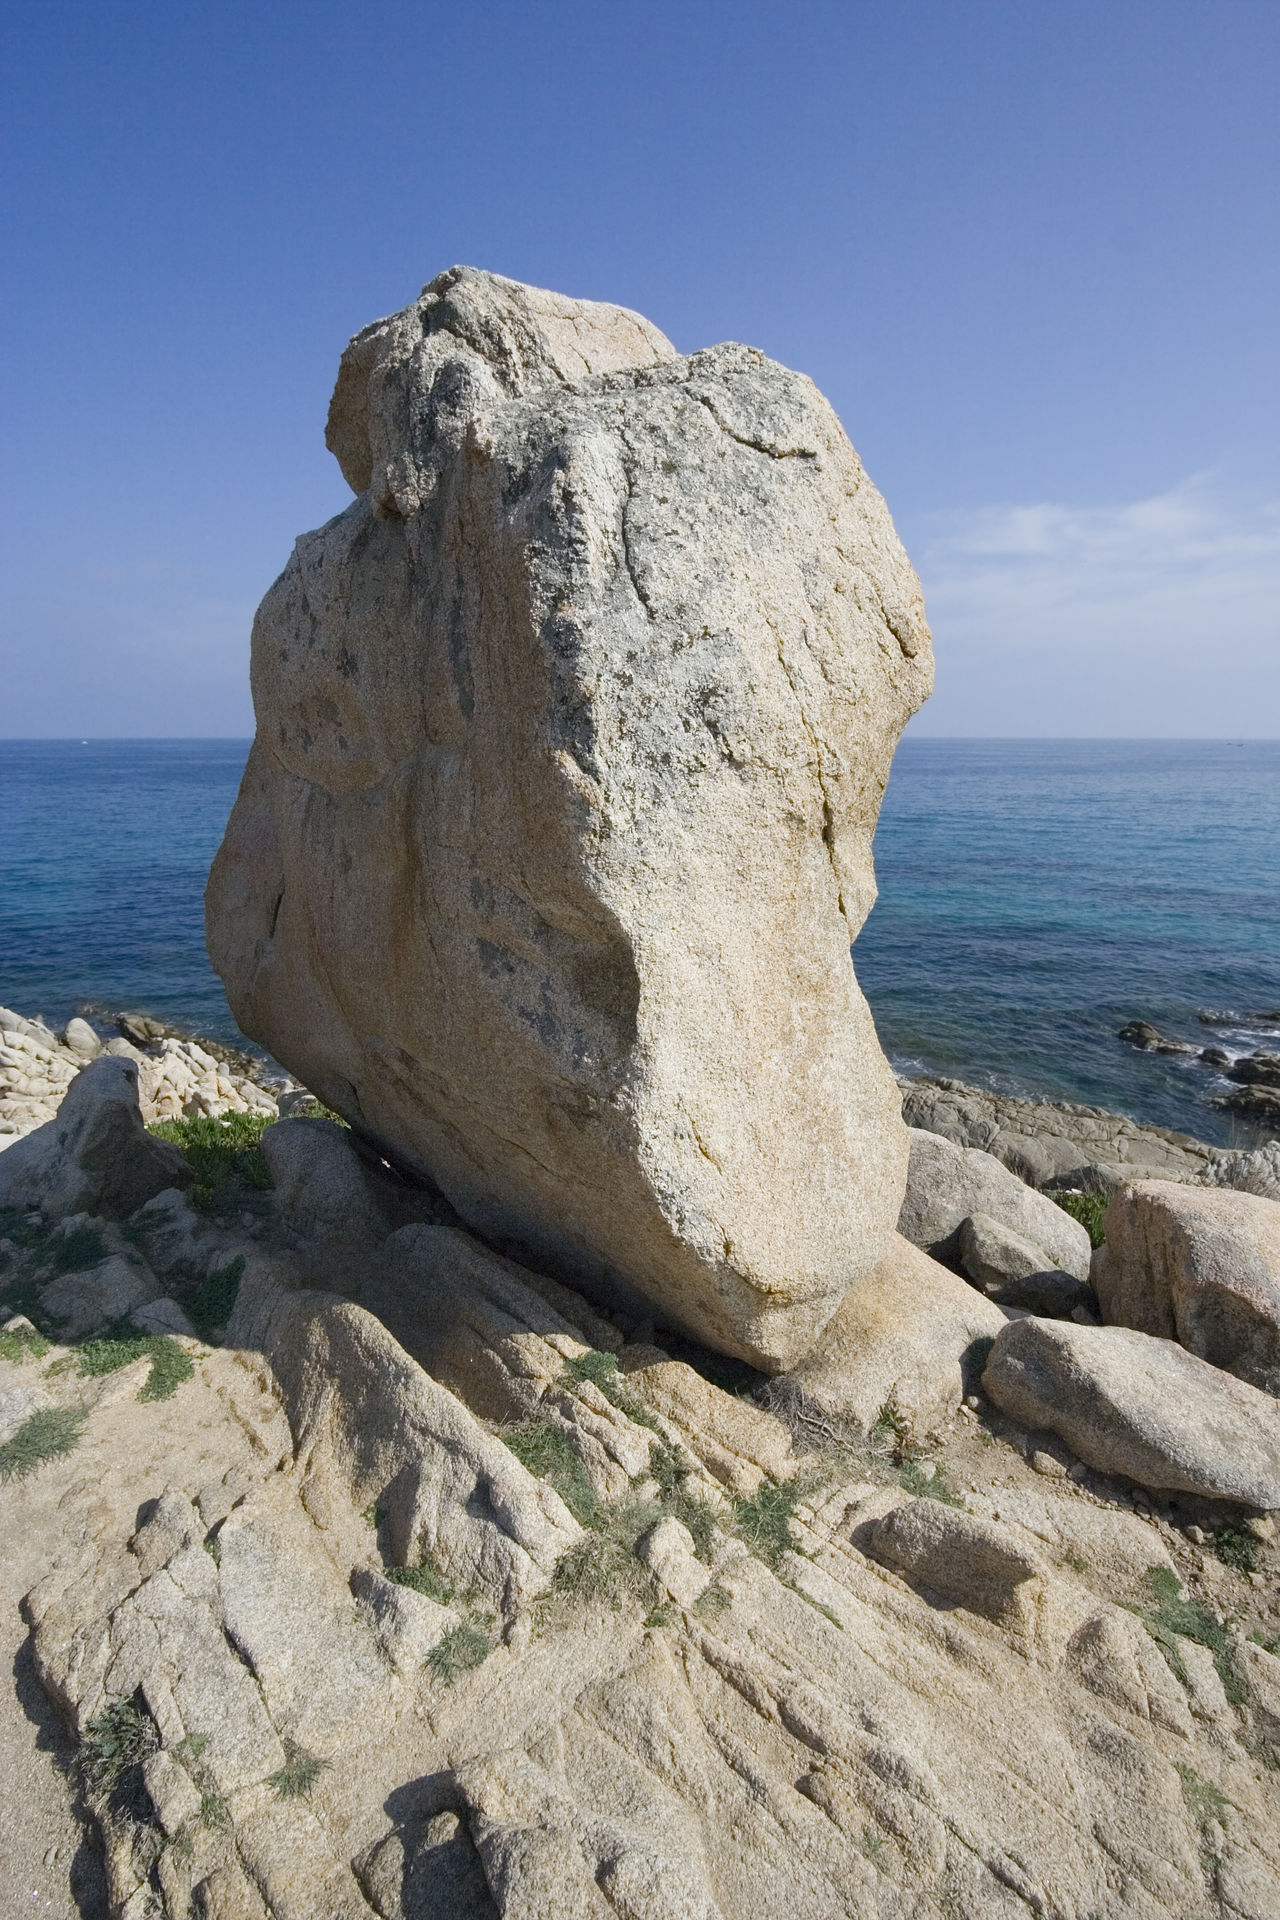 giant menhir at the seashore - waiting for obelix Boulder Clear Sky Cliff Coast Coastline Côte D'Azur France Giant Granite Horizon Over Water Mediterranean Sea Menhir Nature No People Obélix Rock Rock - Object Rock Formation Rocky Coastline Sea Stone Tranquil Scene Tranquility Water Wilderness